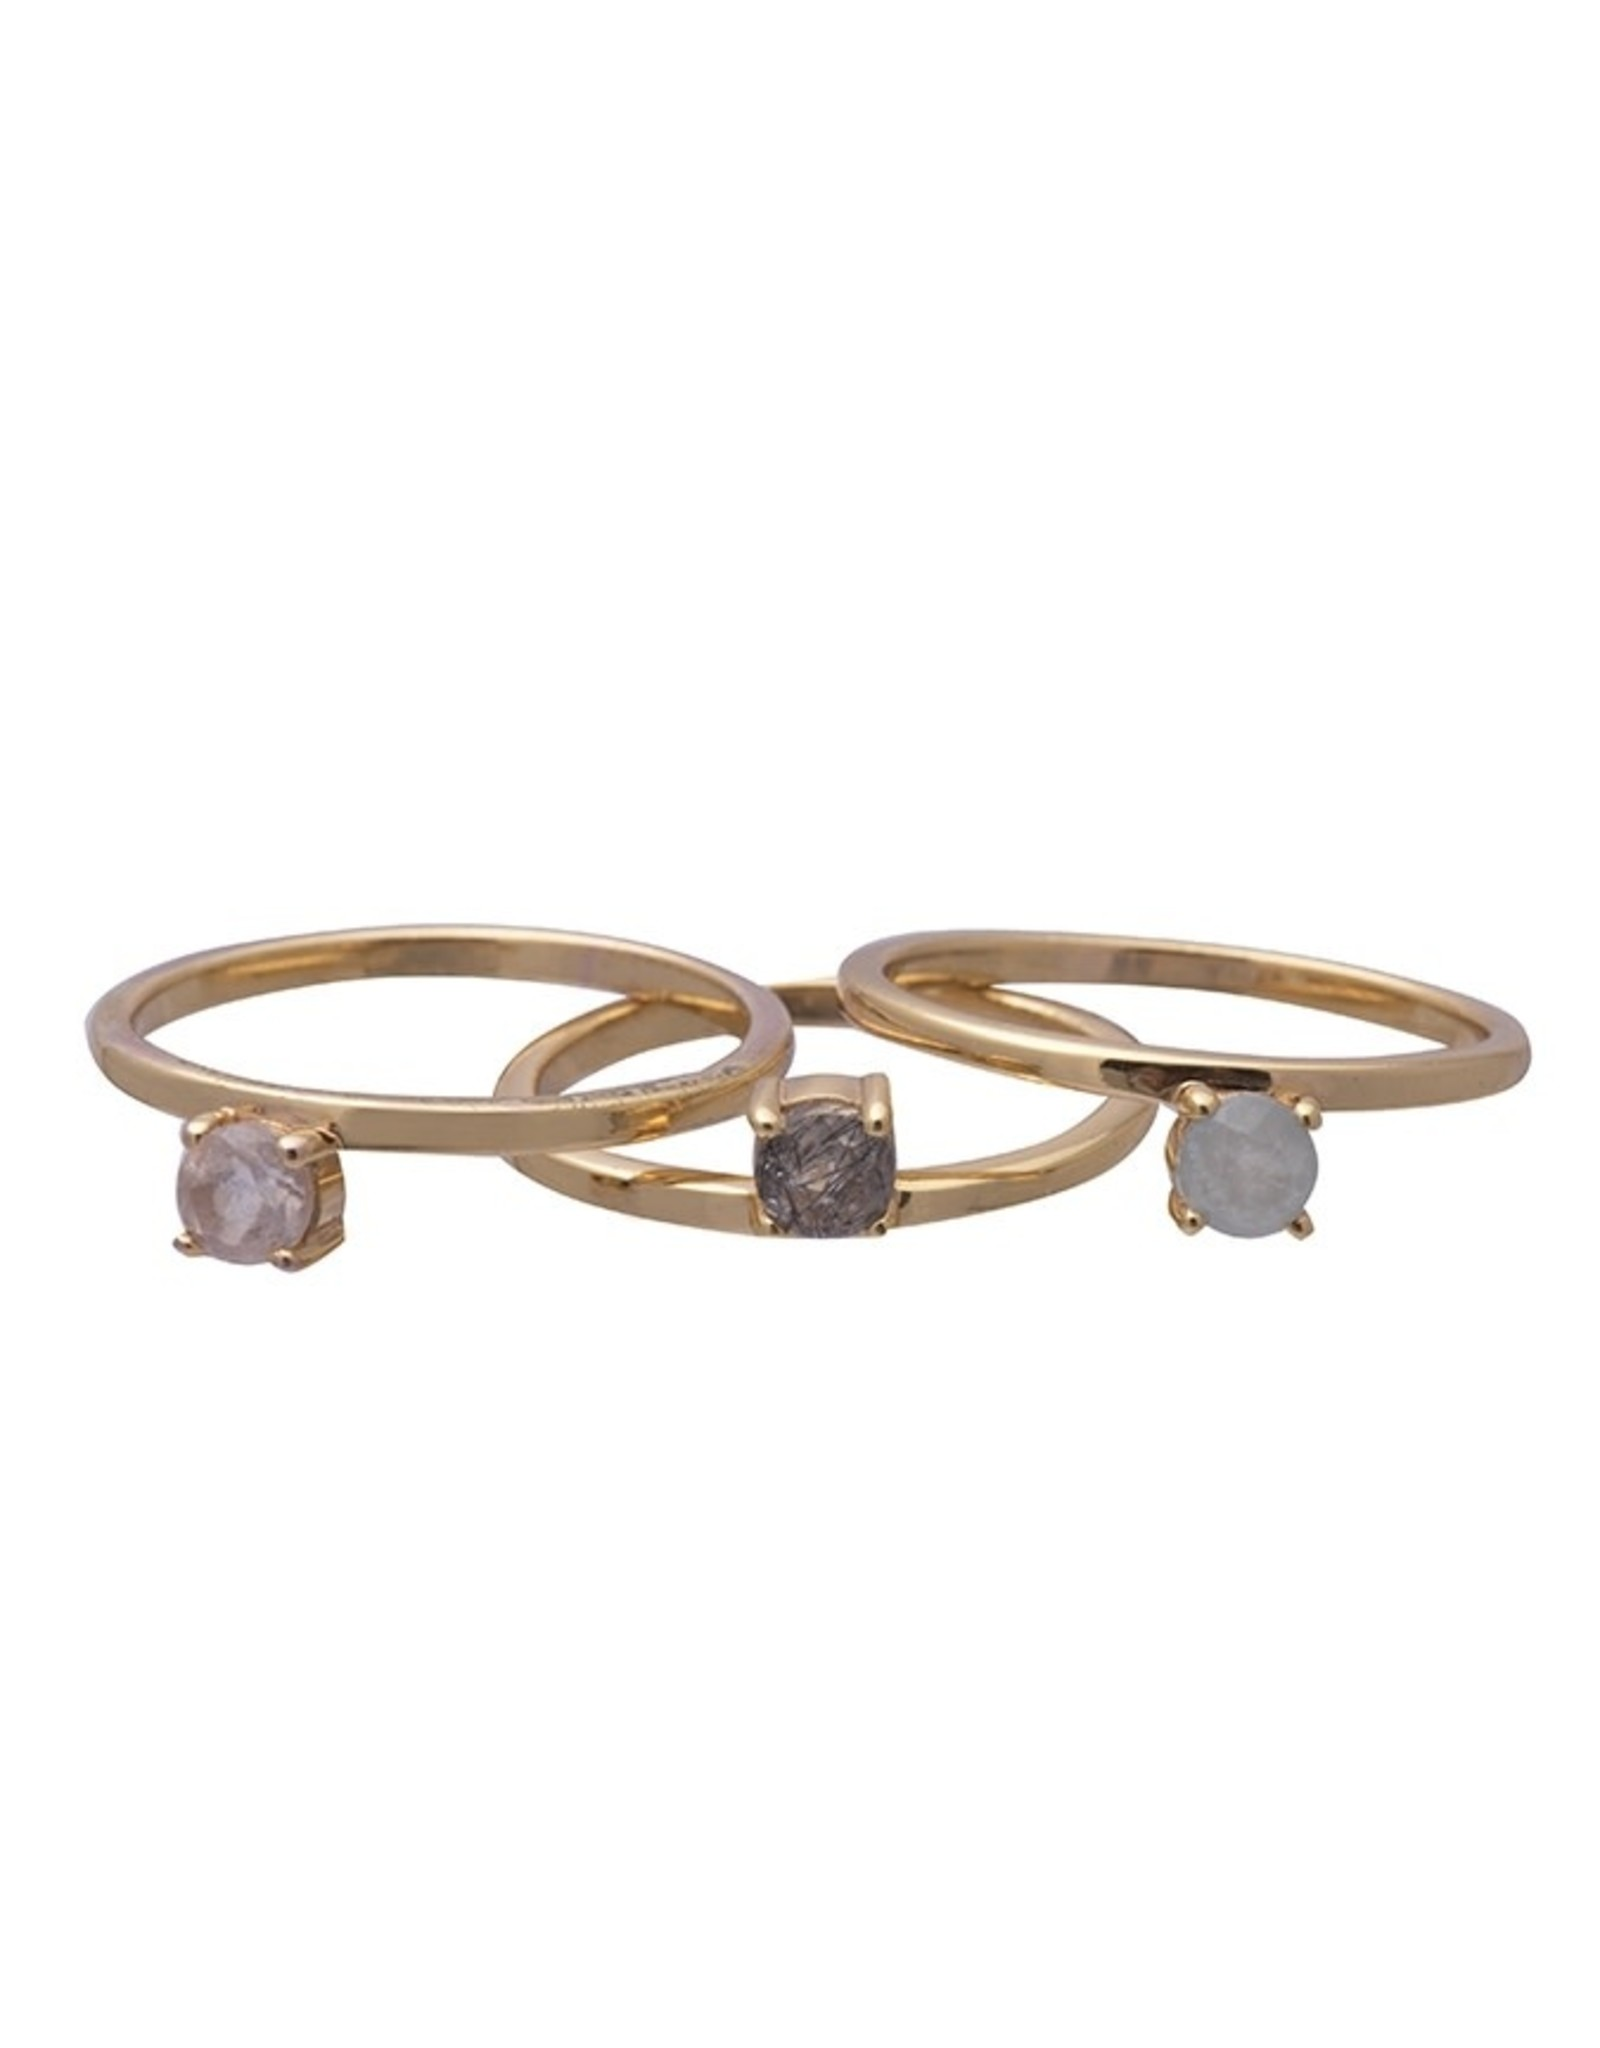 Sarah Mulder Obsession Gold Ring (Moonstone or Labradoriate) Size 7